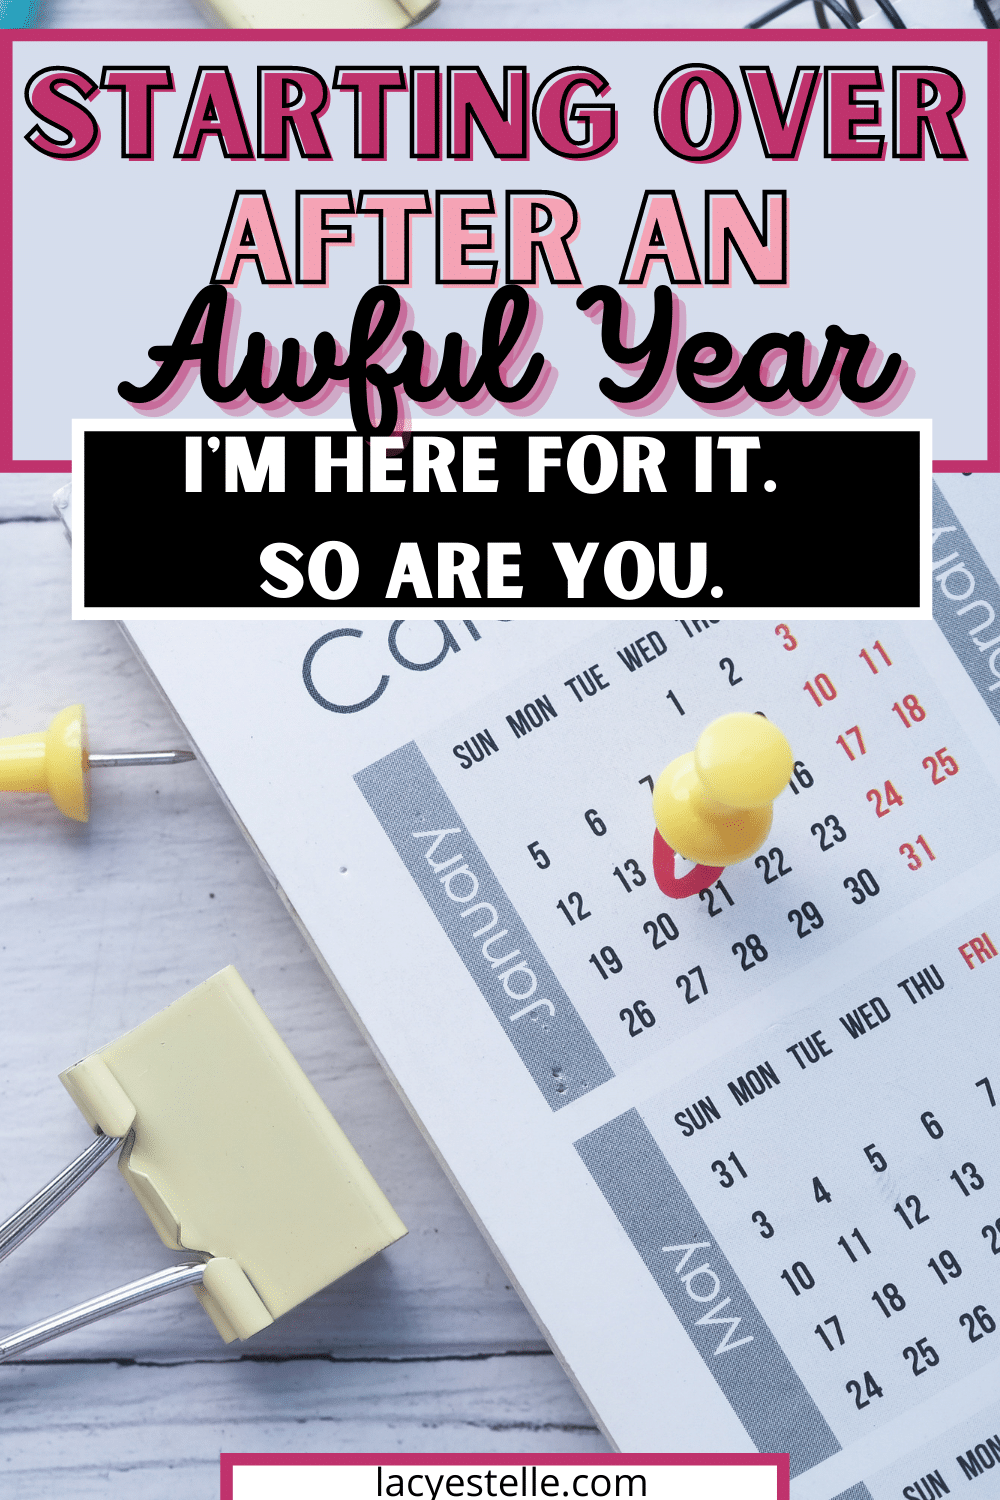 Starting over after a really terrible year. How to have a better year. How to make this year better than last year.